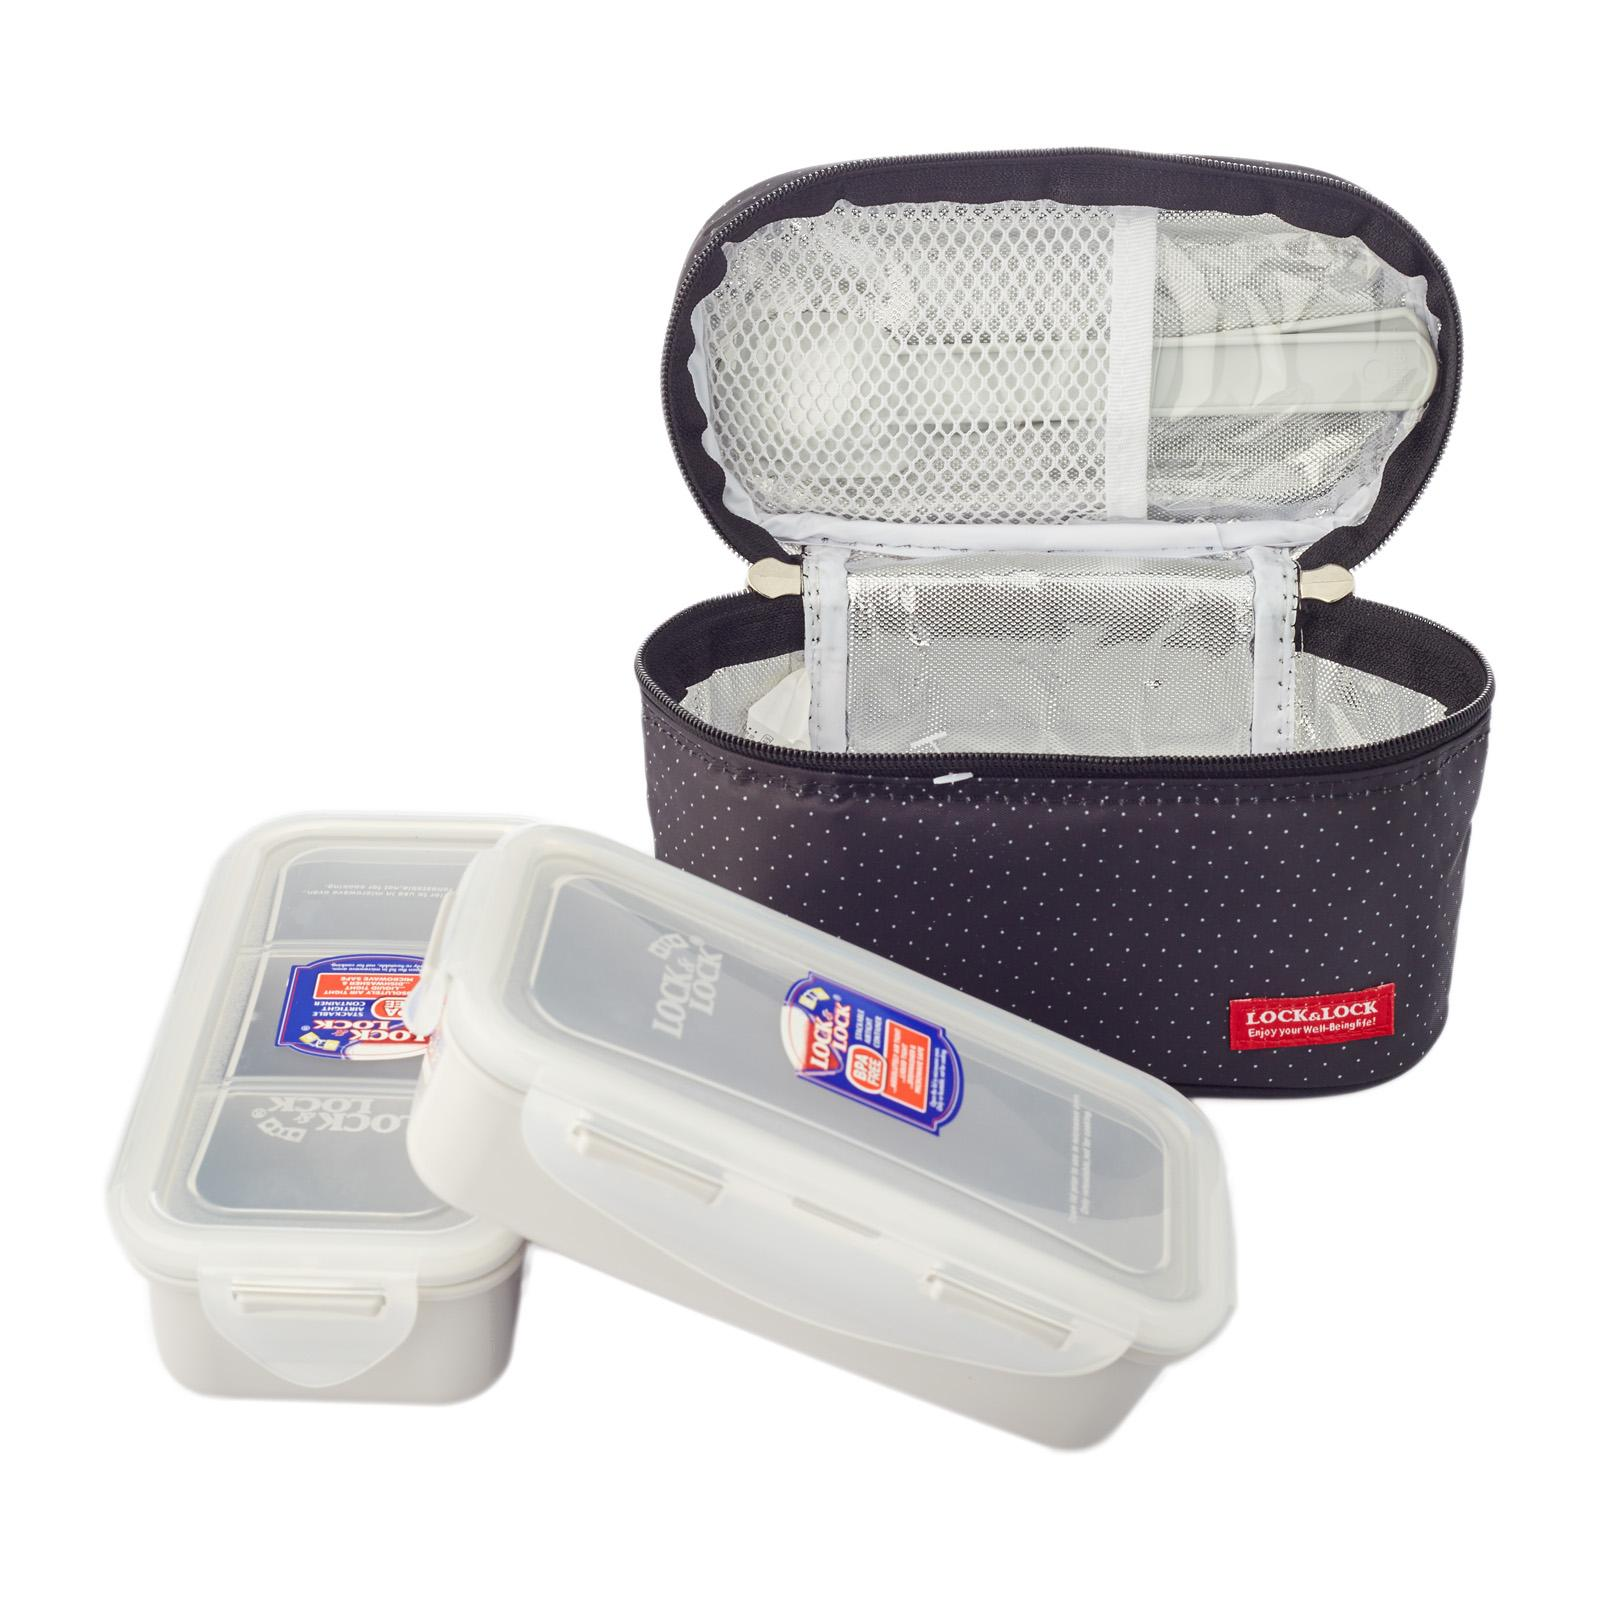 Lock and Lock 2 Piece Lunch Box Set with Black Bag